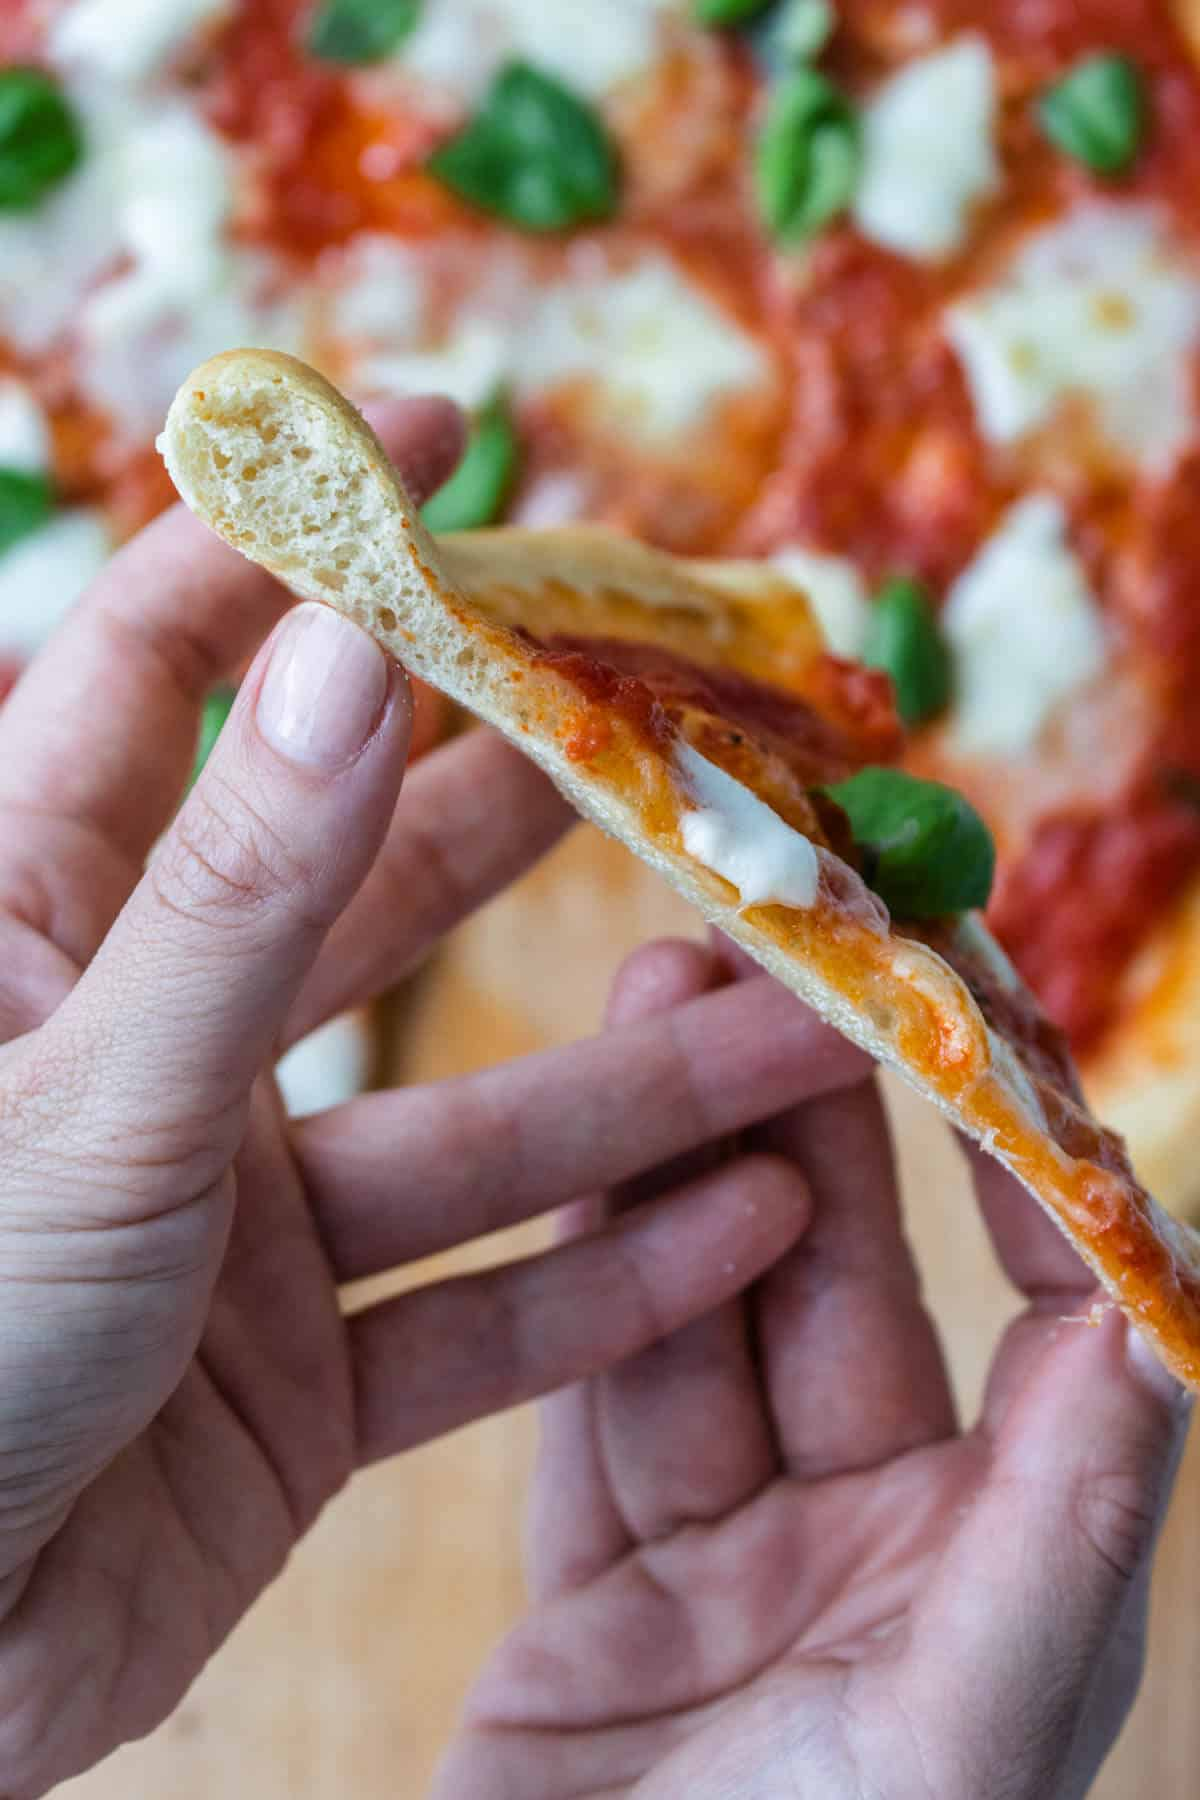 Slice of Italian pizza held on the side to show the crust